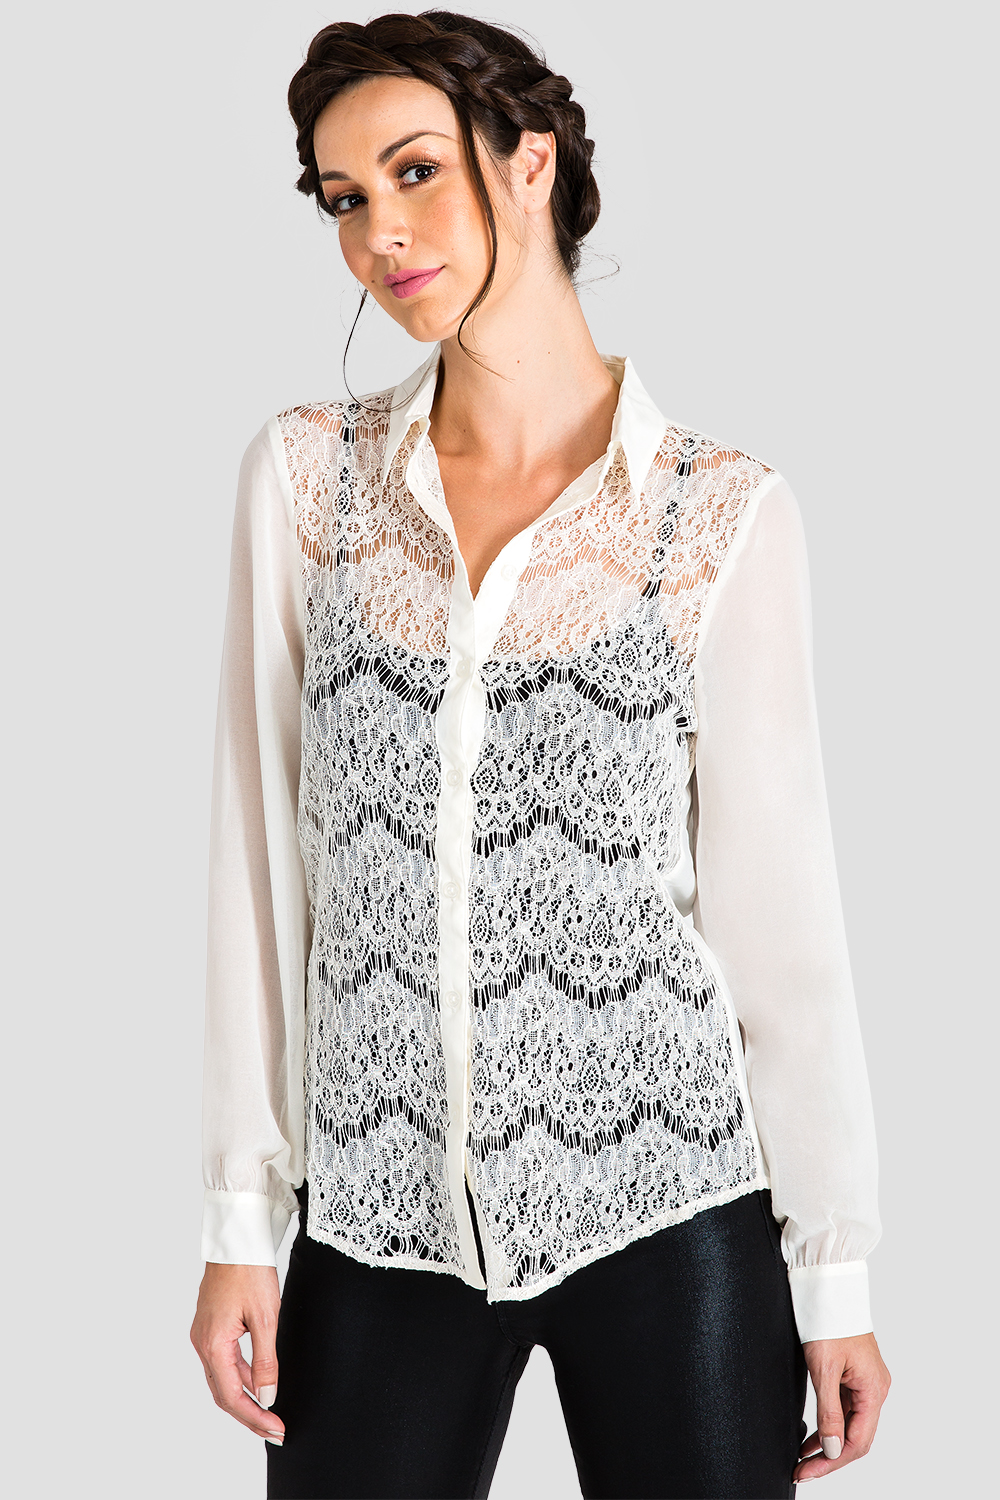 Ivory Women's Button-Up Lace Shirt